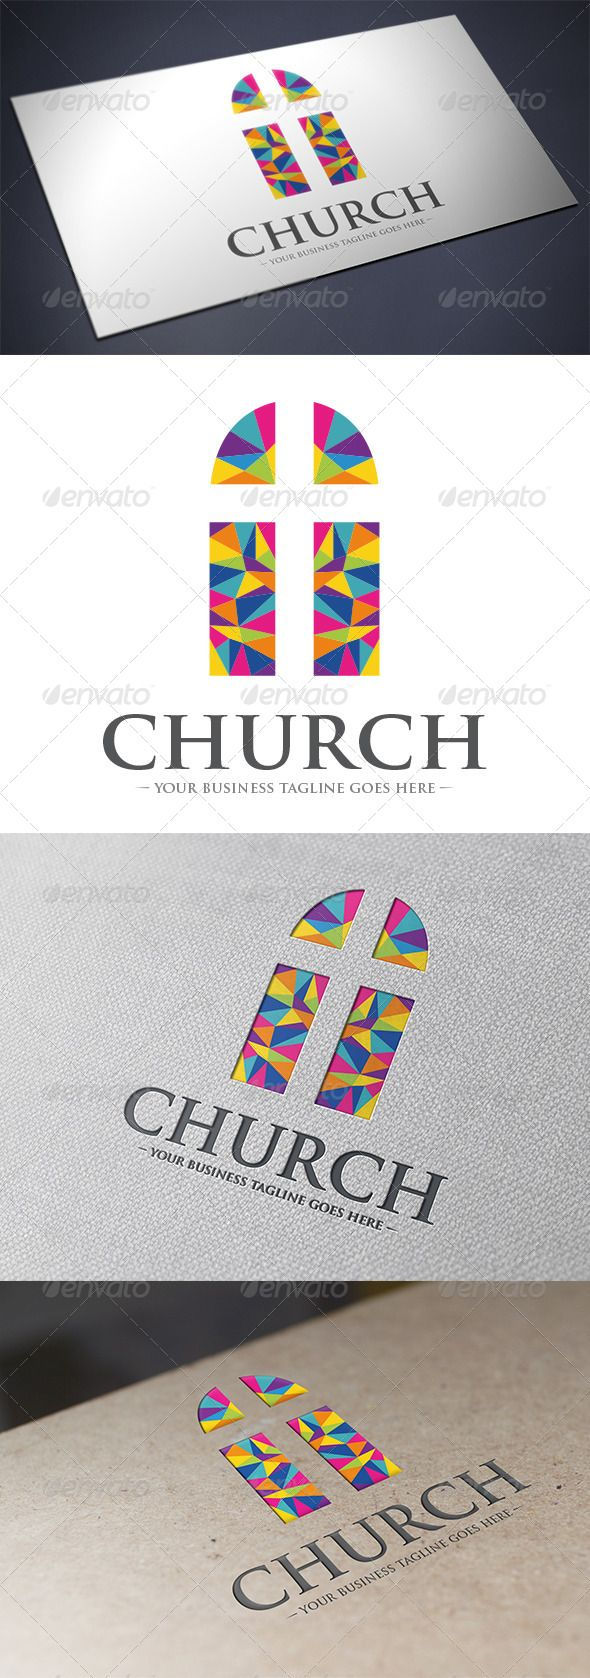 Church Logo Template  #GraphicRiver         - Three color version: color, greyscale and single color.   - The logo is 100% resizable.   - You can change text and colors very easy using the named and organized layers that includes the file.   - The typography used is Trajan Pro a system default font.         Created: 18September13 GraphicsFilesIncluded: VectorEPS #AIIllustrator Layered: Yes MinimumAdobeCSVersion: CS Resolution: Resizable Tags: architectscreativestudio #baptistchurch #bible #brigh #churchitems